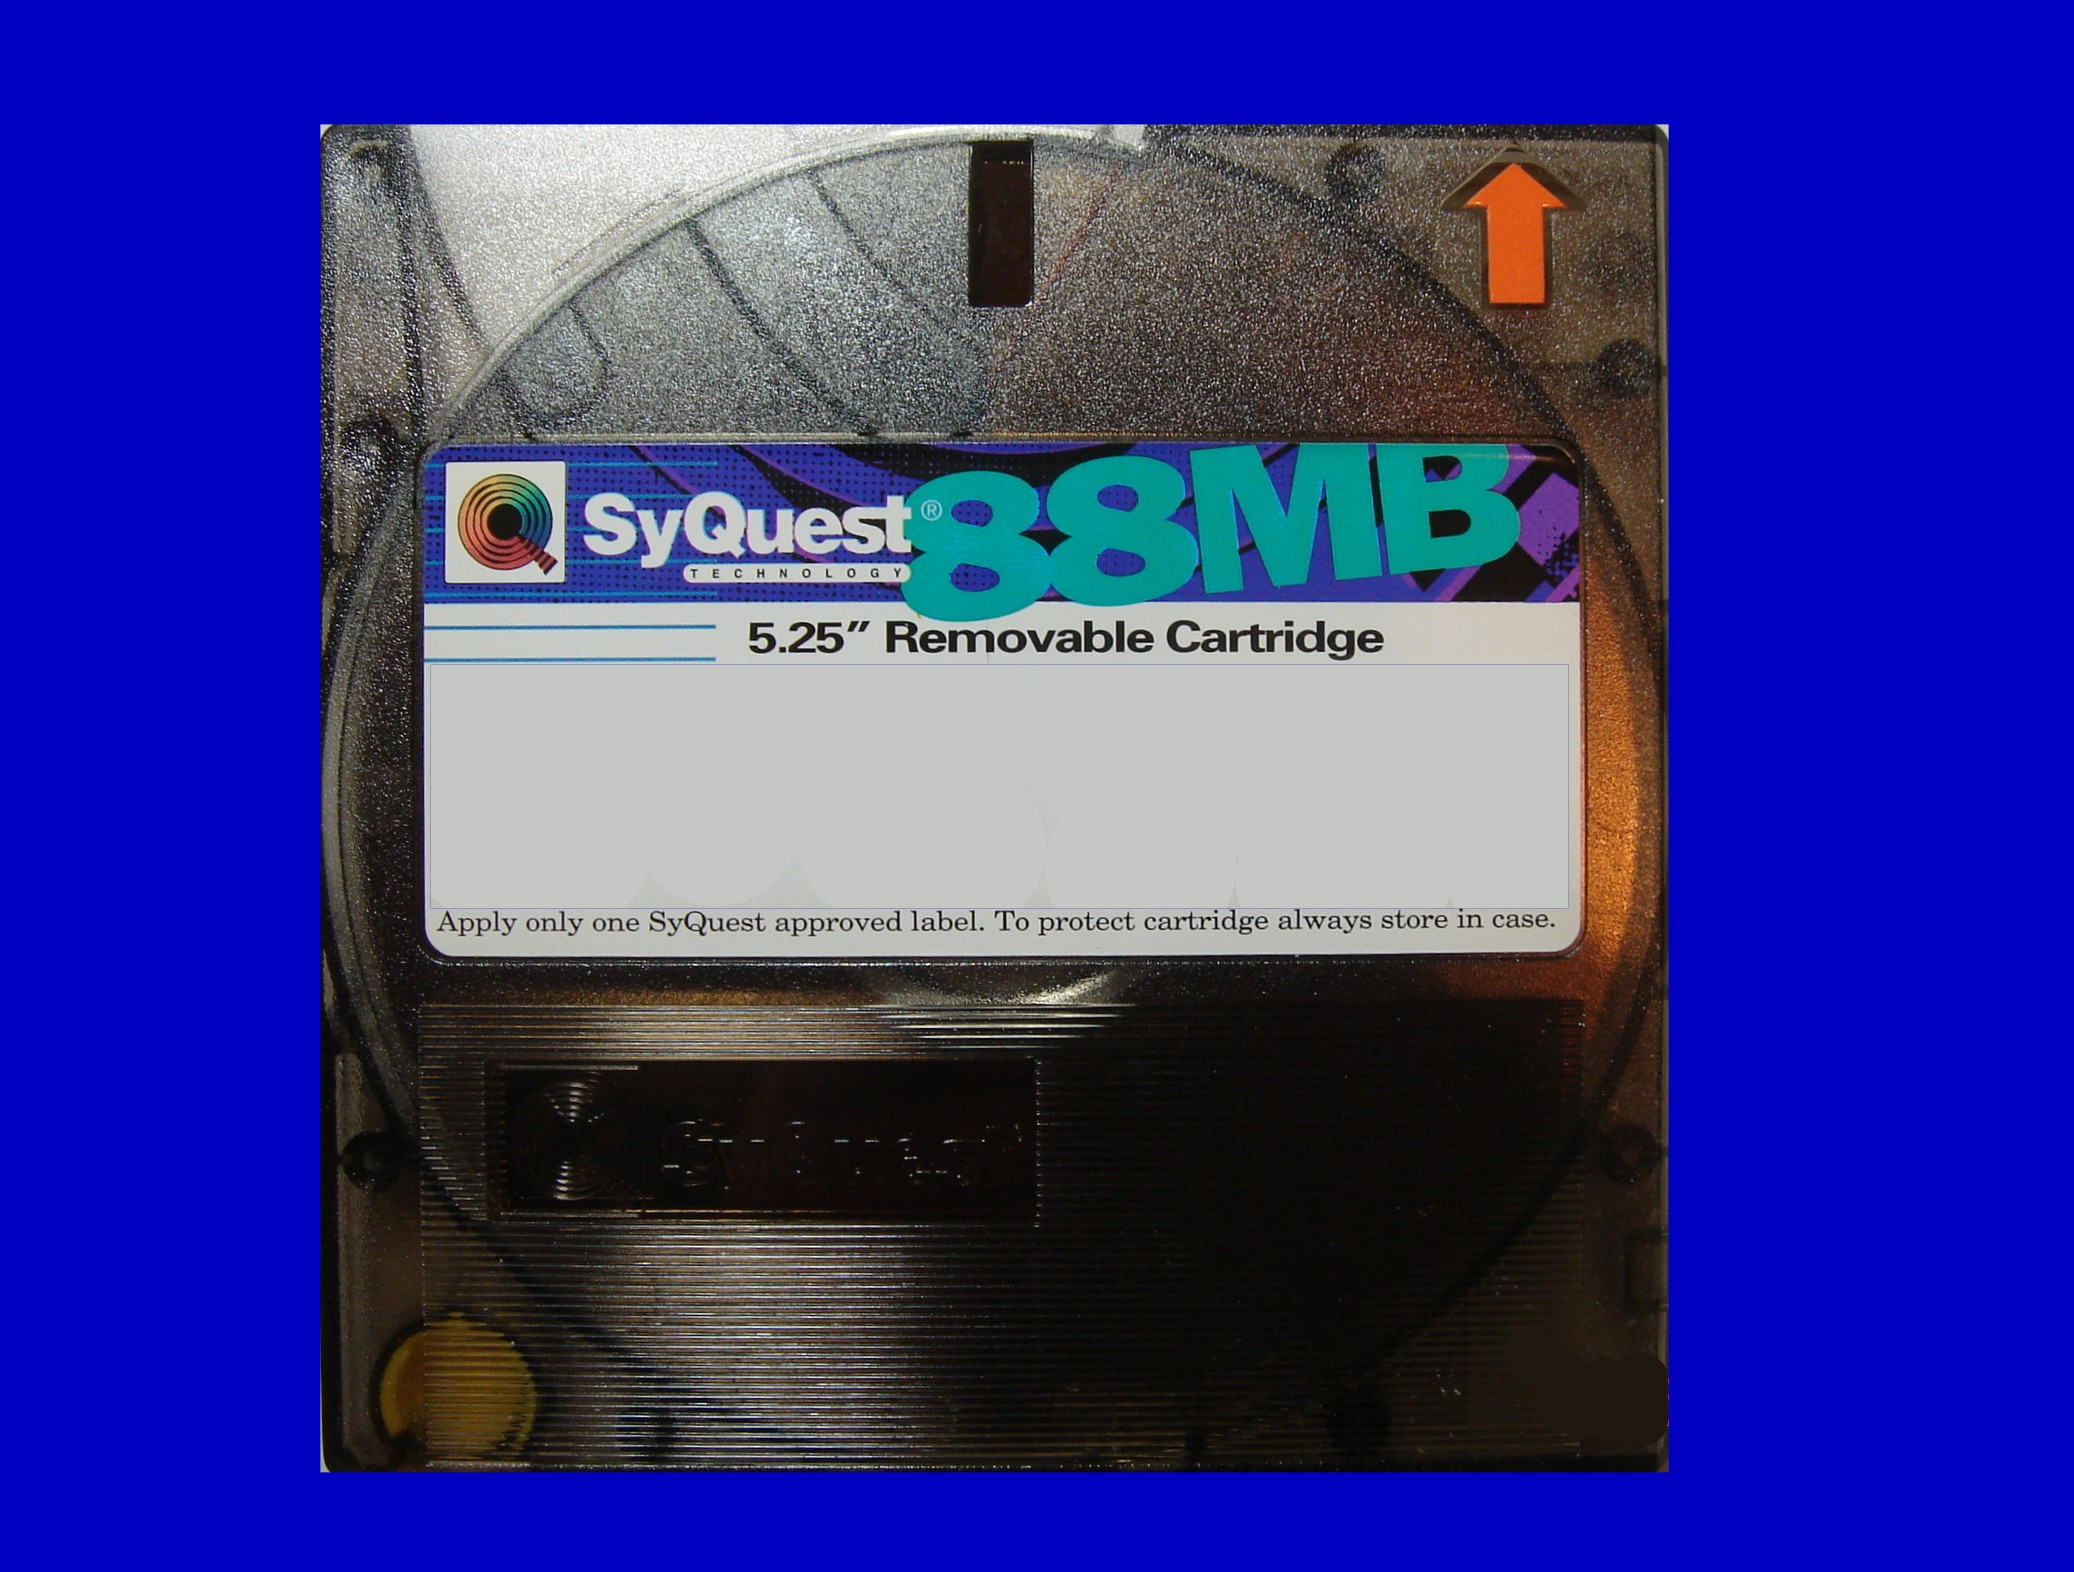 Data Recovery from an 88mb Syquest Removable Cartridge.